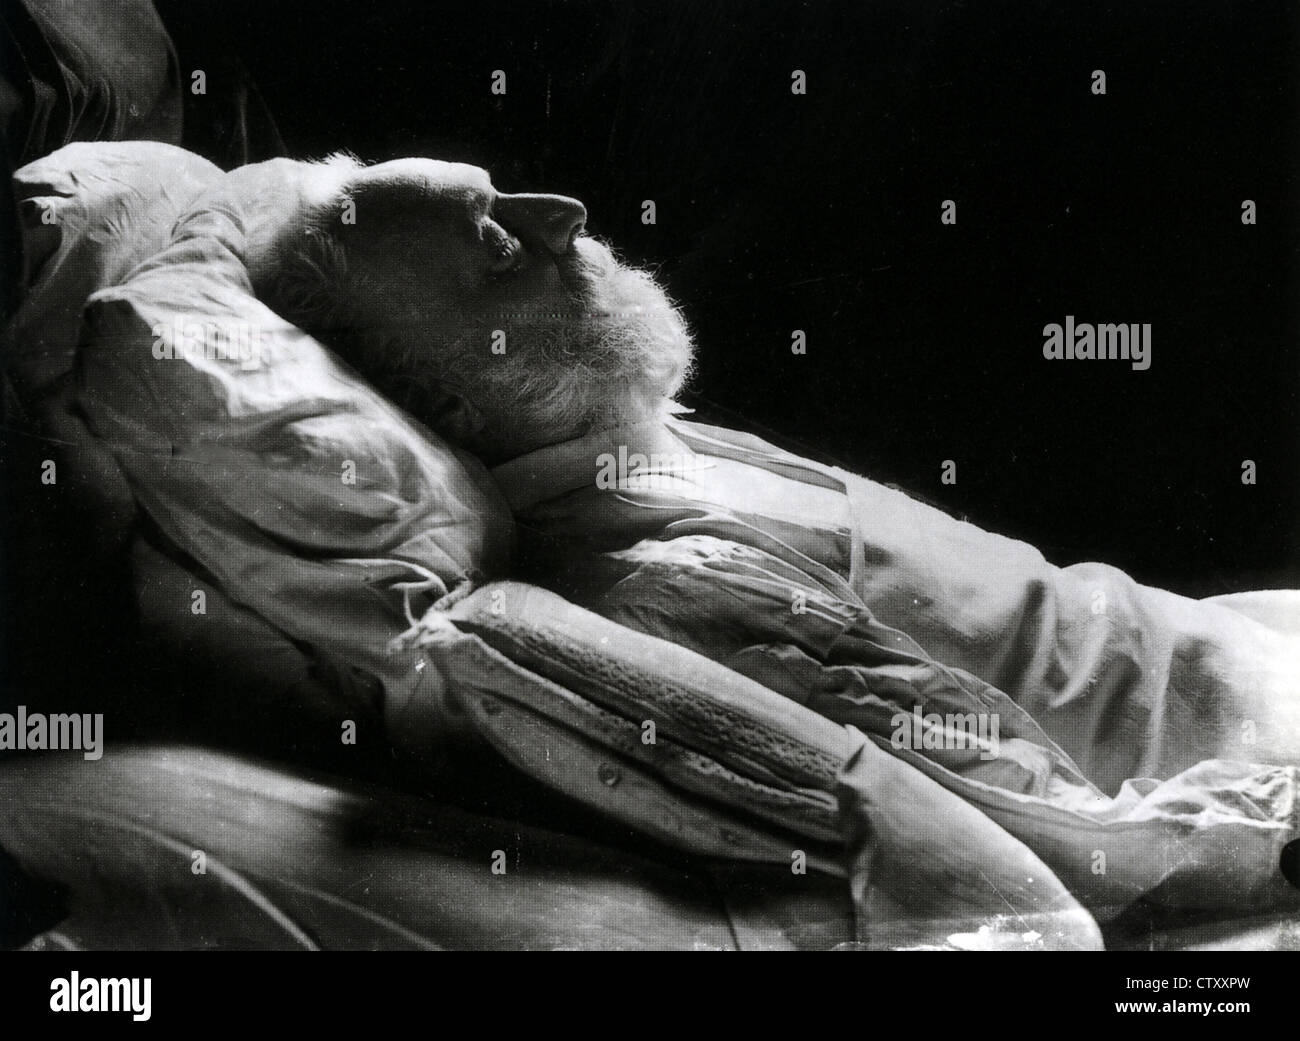 french author writer stock photos french author writer stock victor hugo 1802 1885 french writer on his deathbed stock image